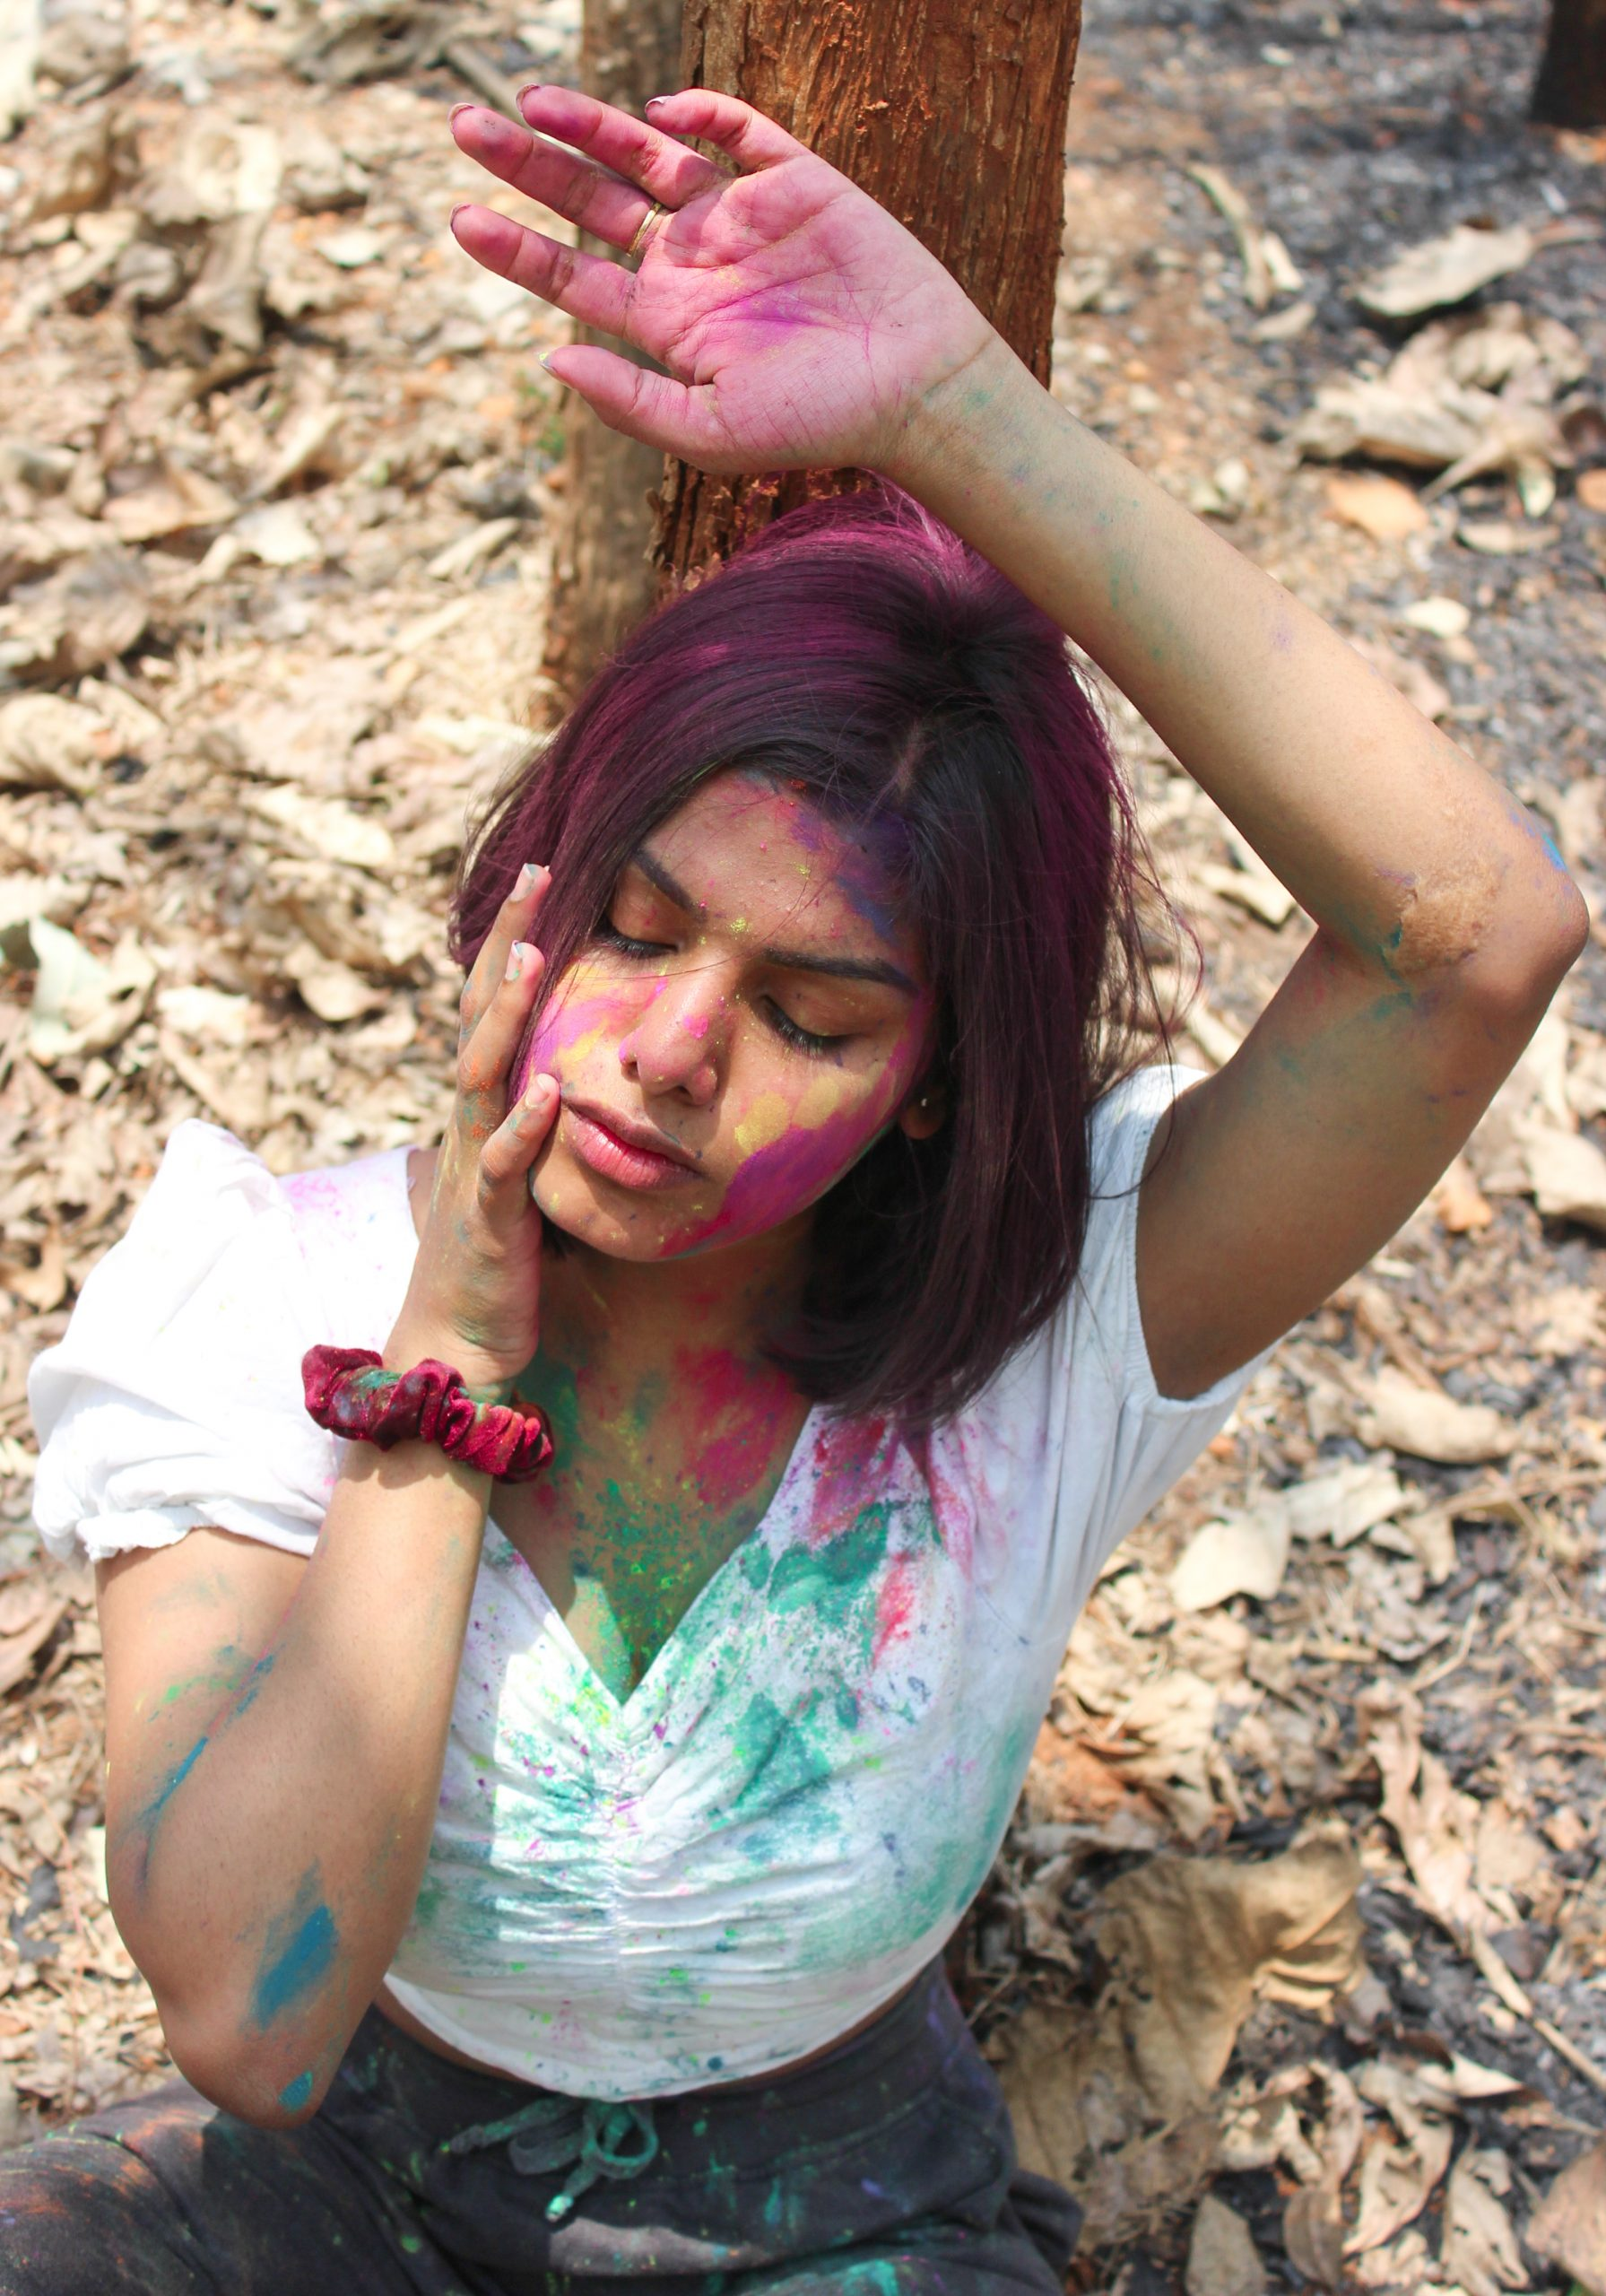 A girl applying holi colors on her face